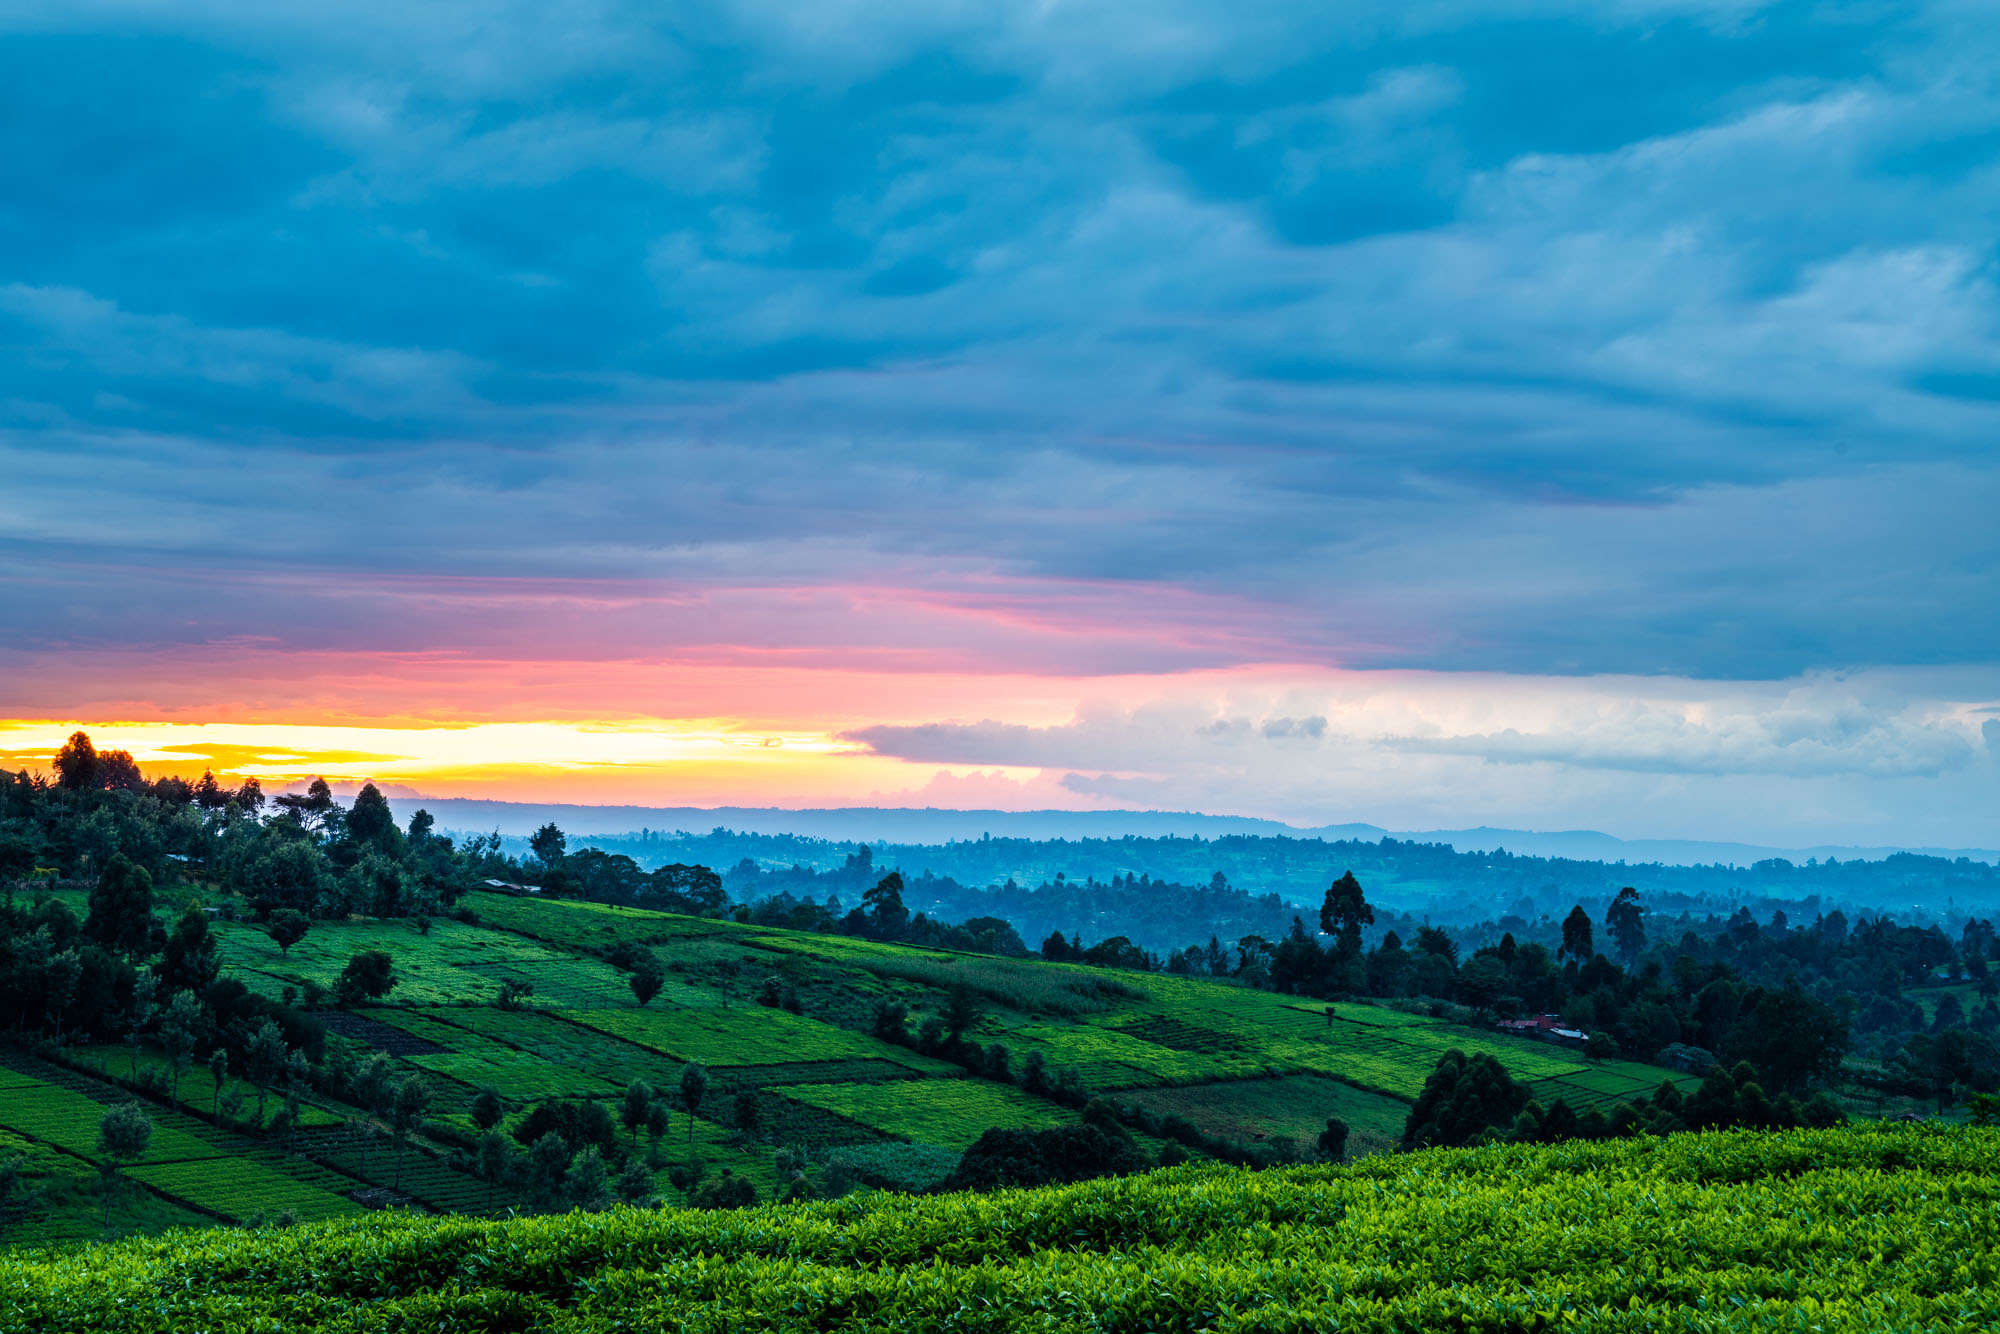 tea plantations kericho kenya africa sunset giz ukaid photographer